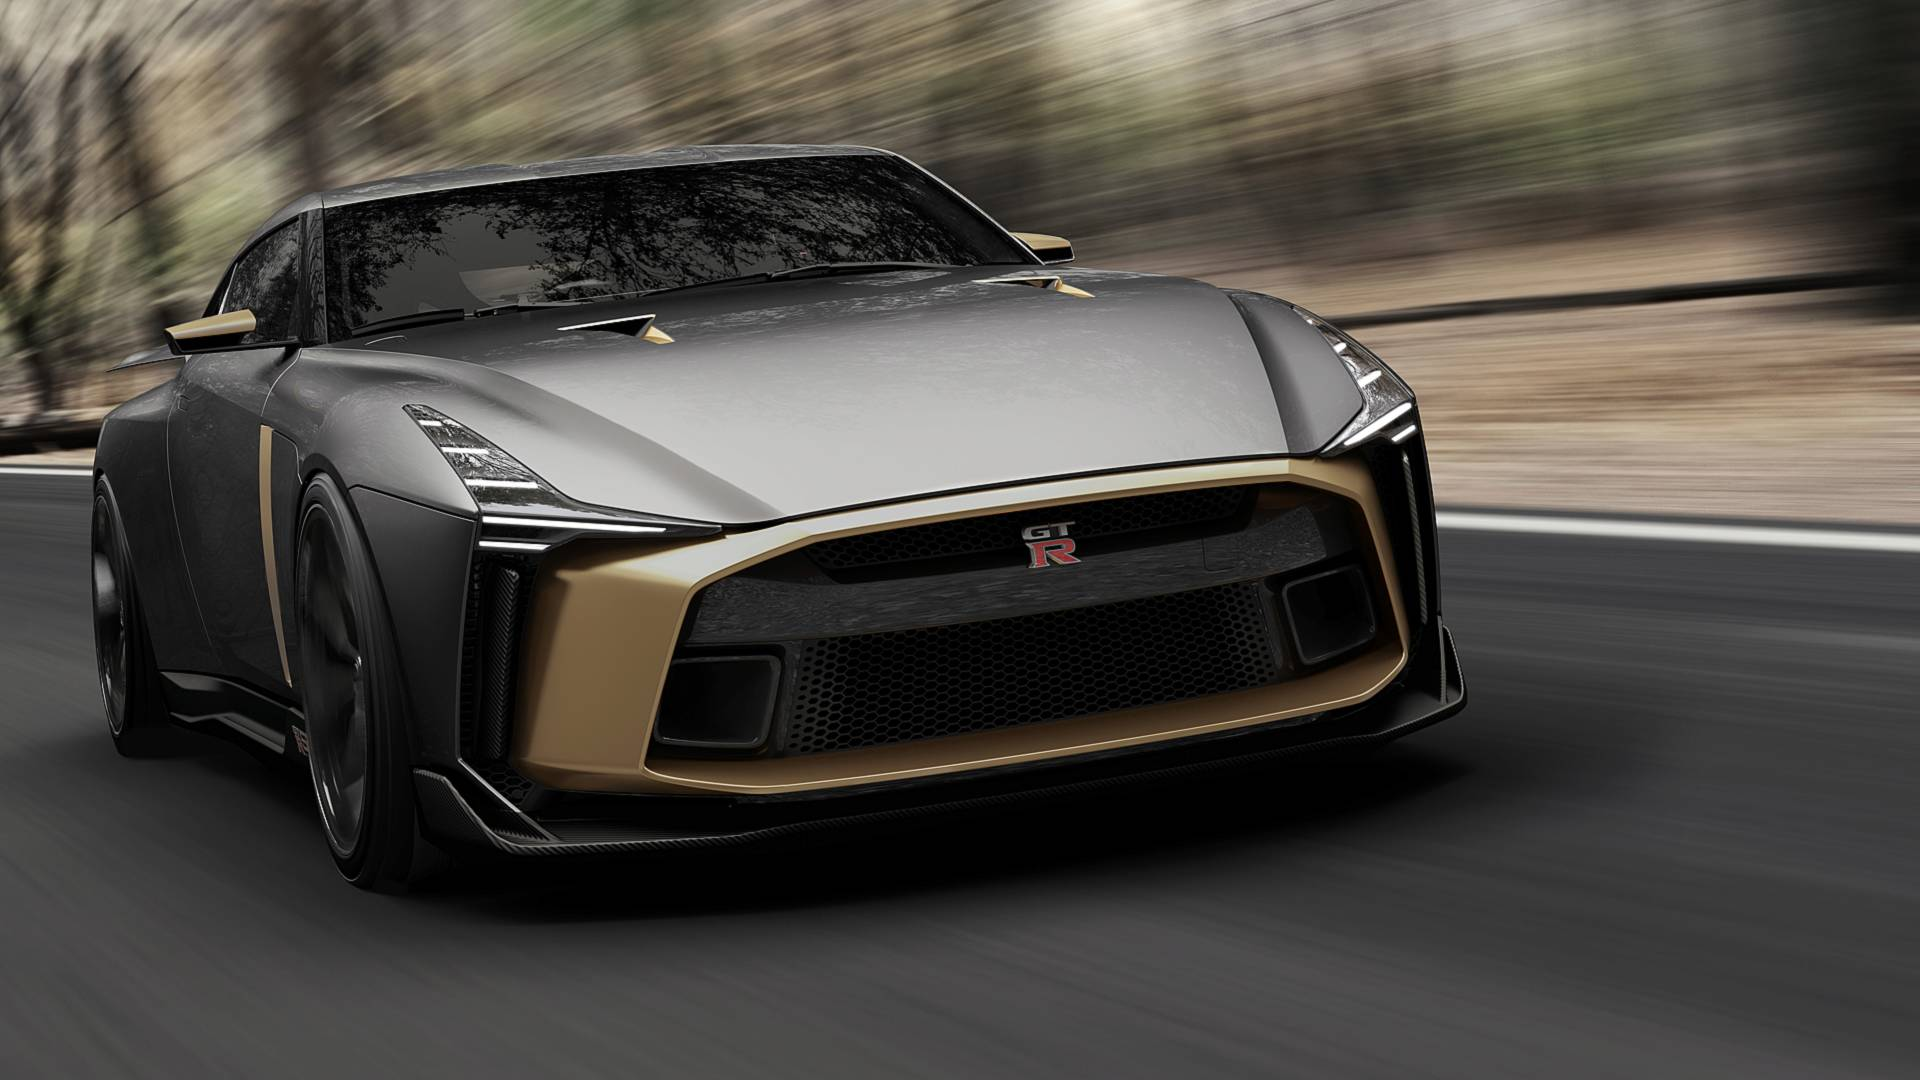 2019 Nissan GT-R50 by Italdesign: Celebrate 50 Years of GT-R